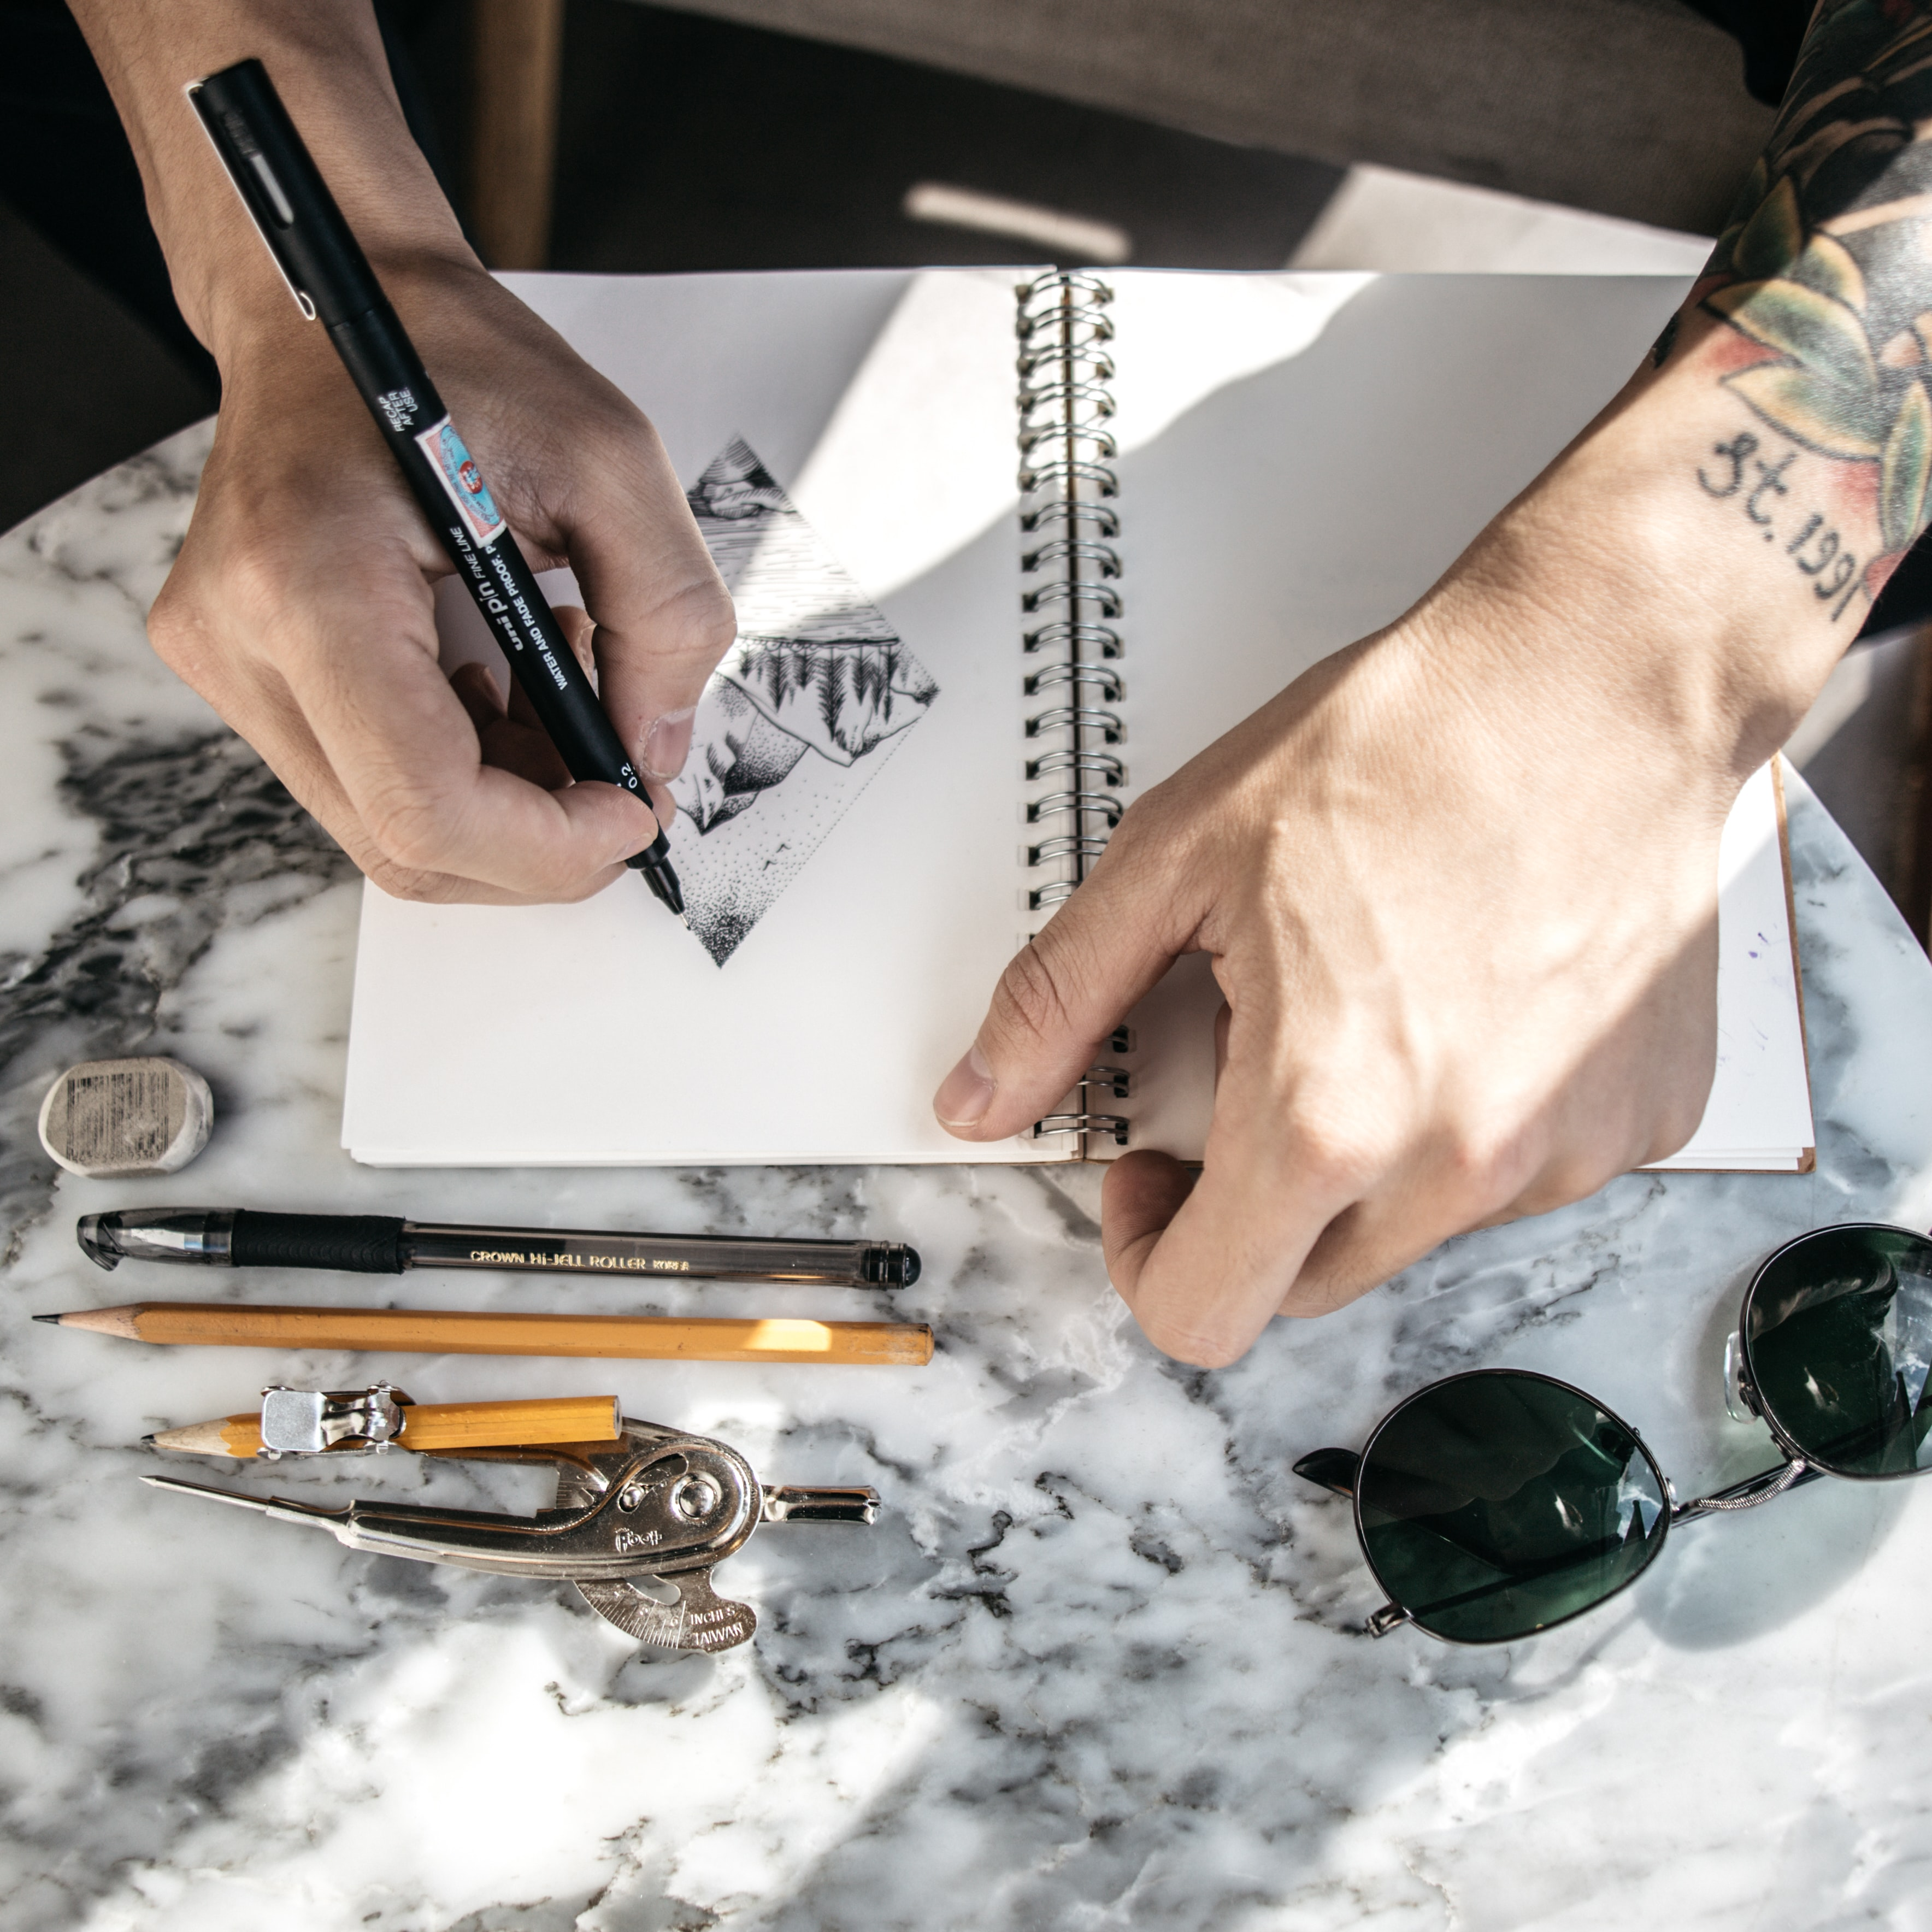 person sketching on notebook using pen